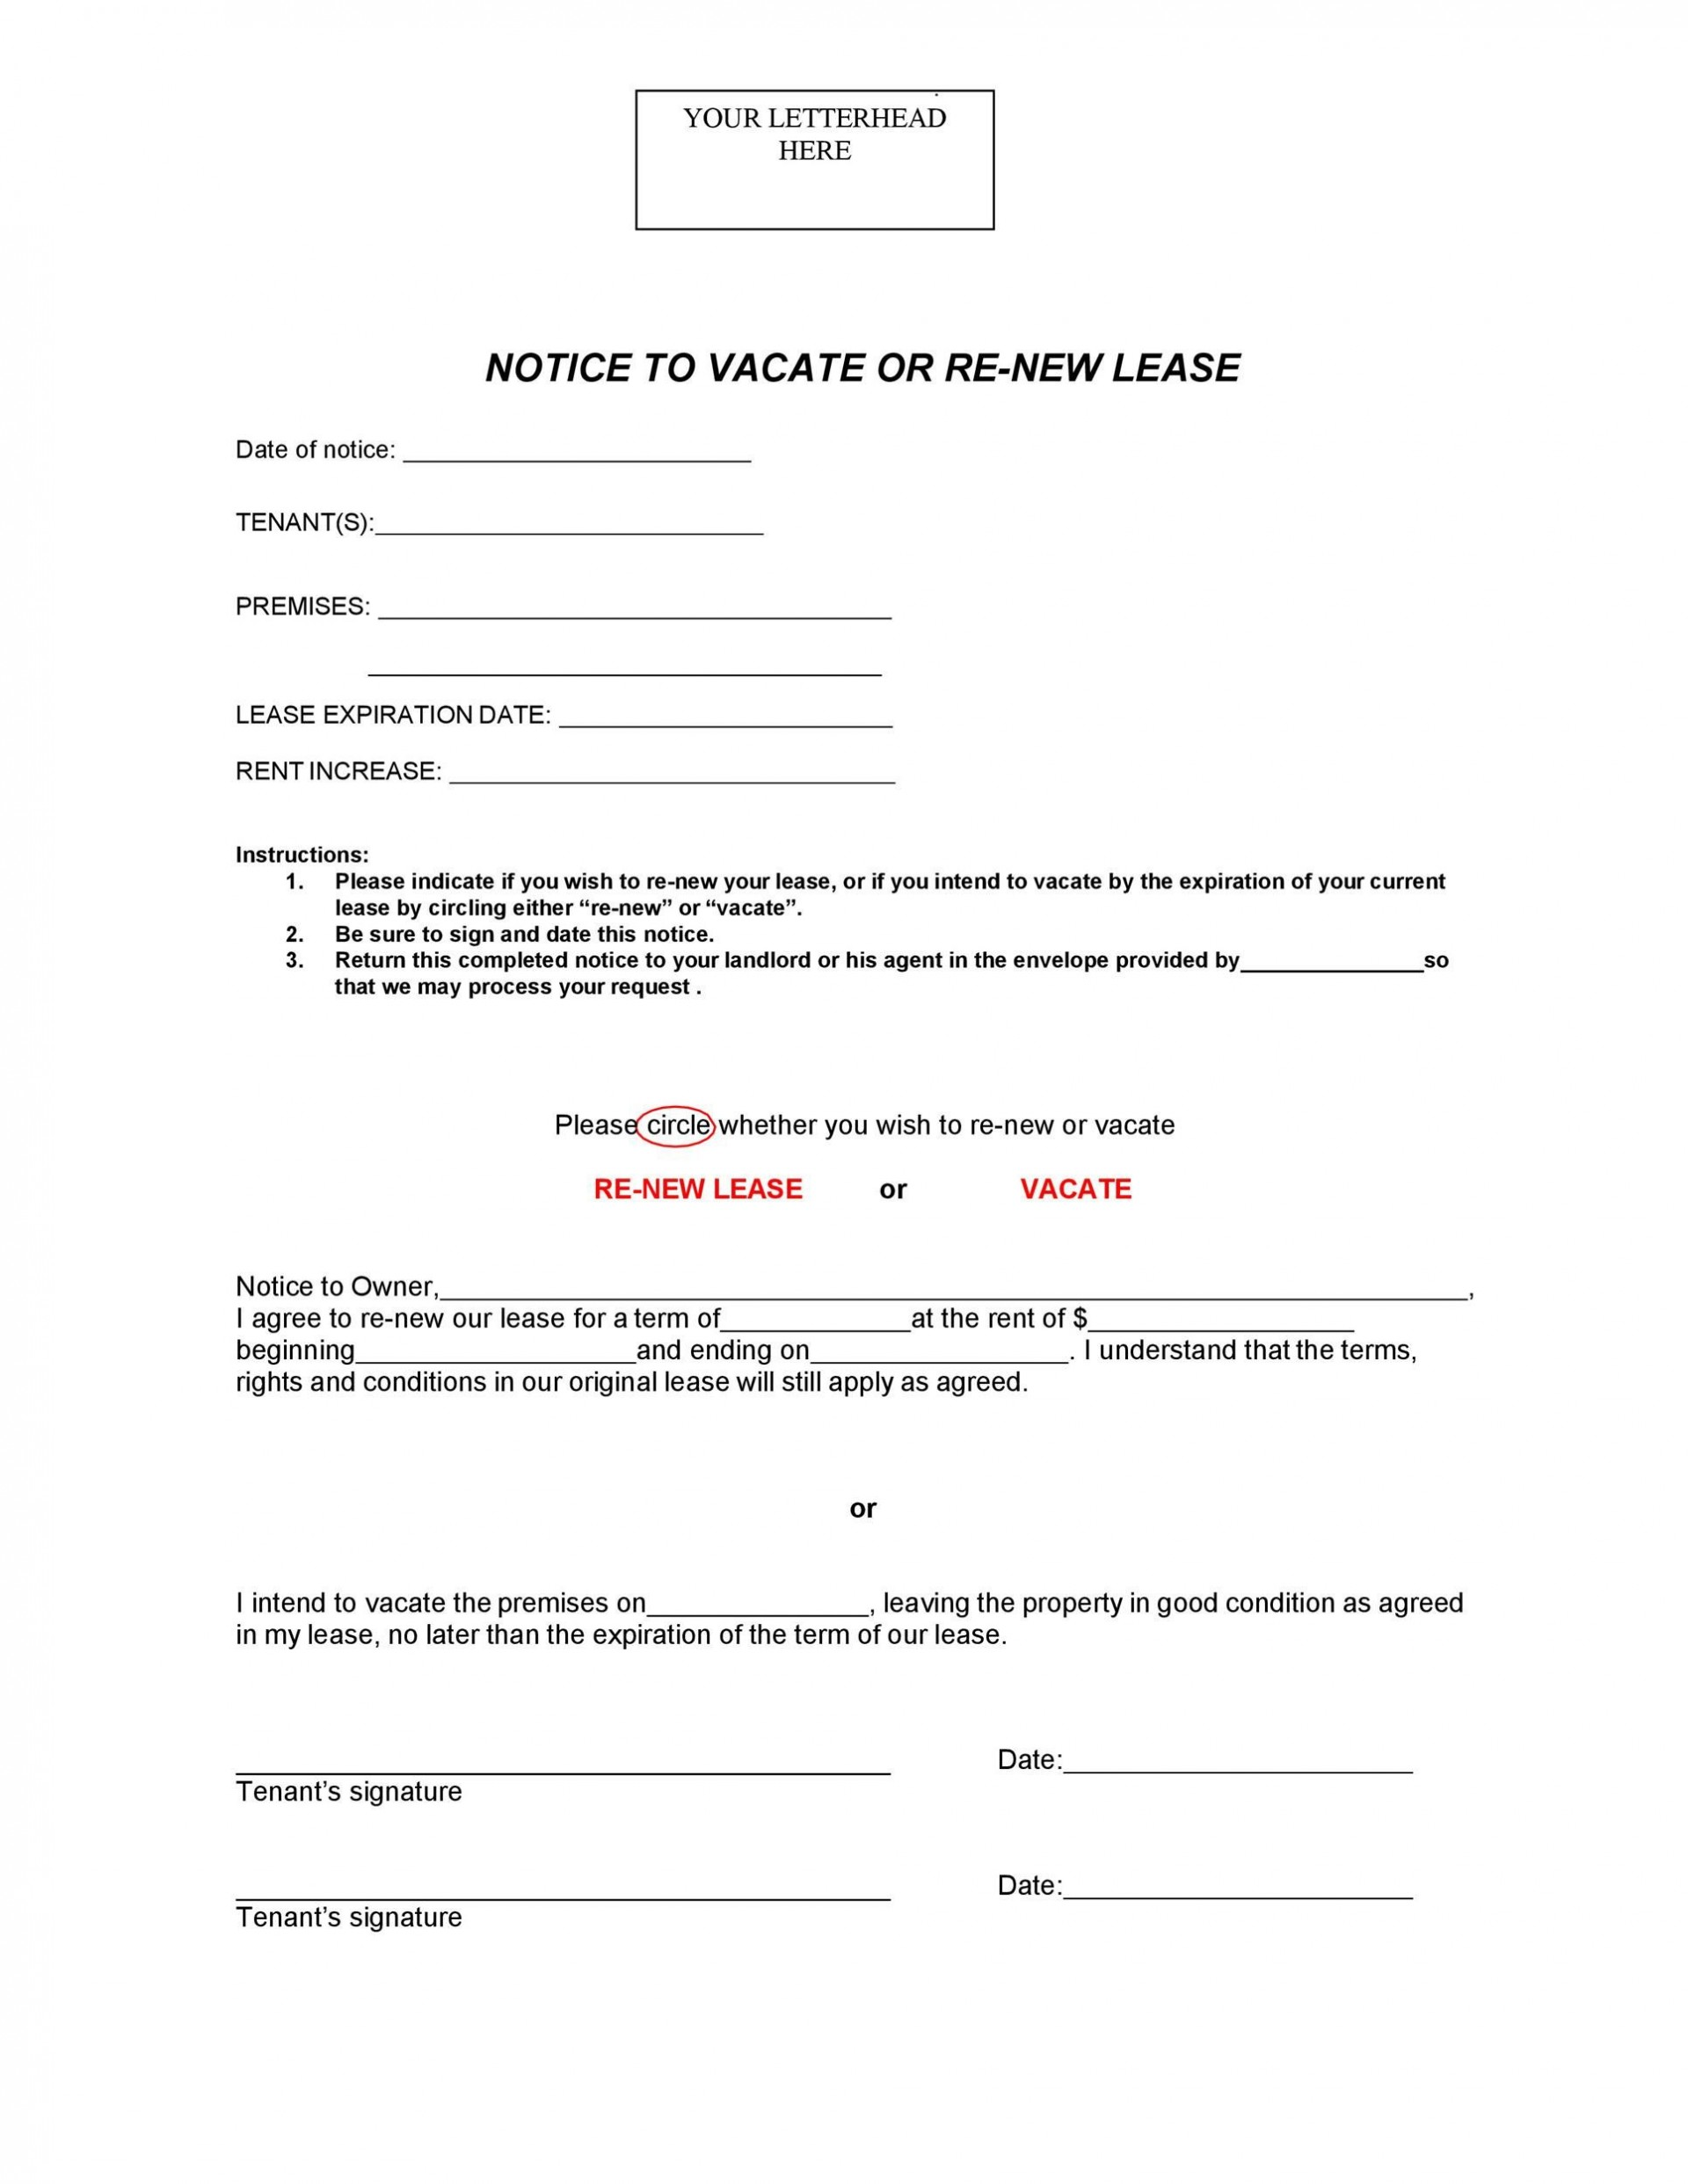 008 Marvelou Renter Lease Agreement Template Highest Quality  Apartment Form Early Termination Of By Tenant South Africa Free1920